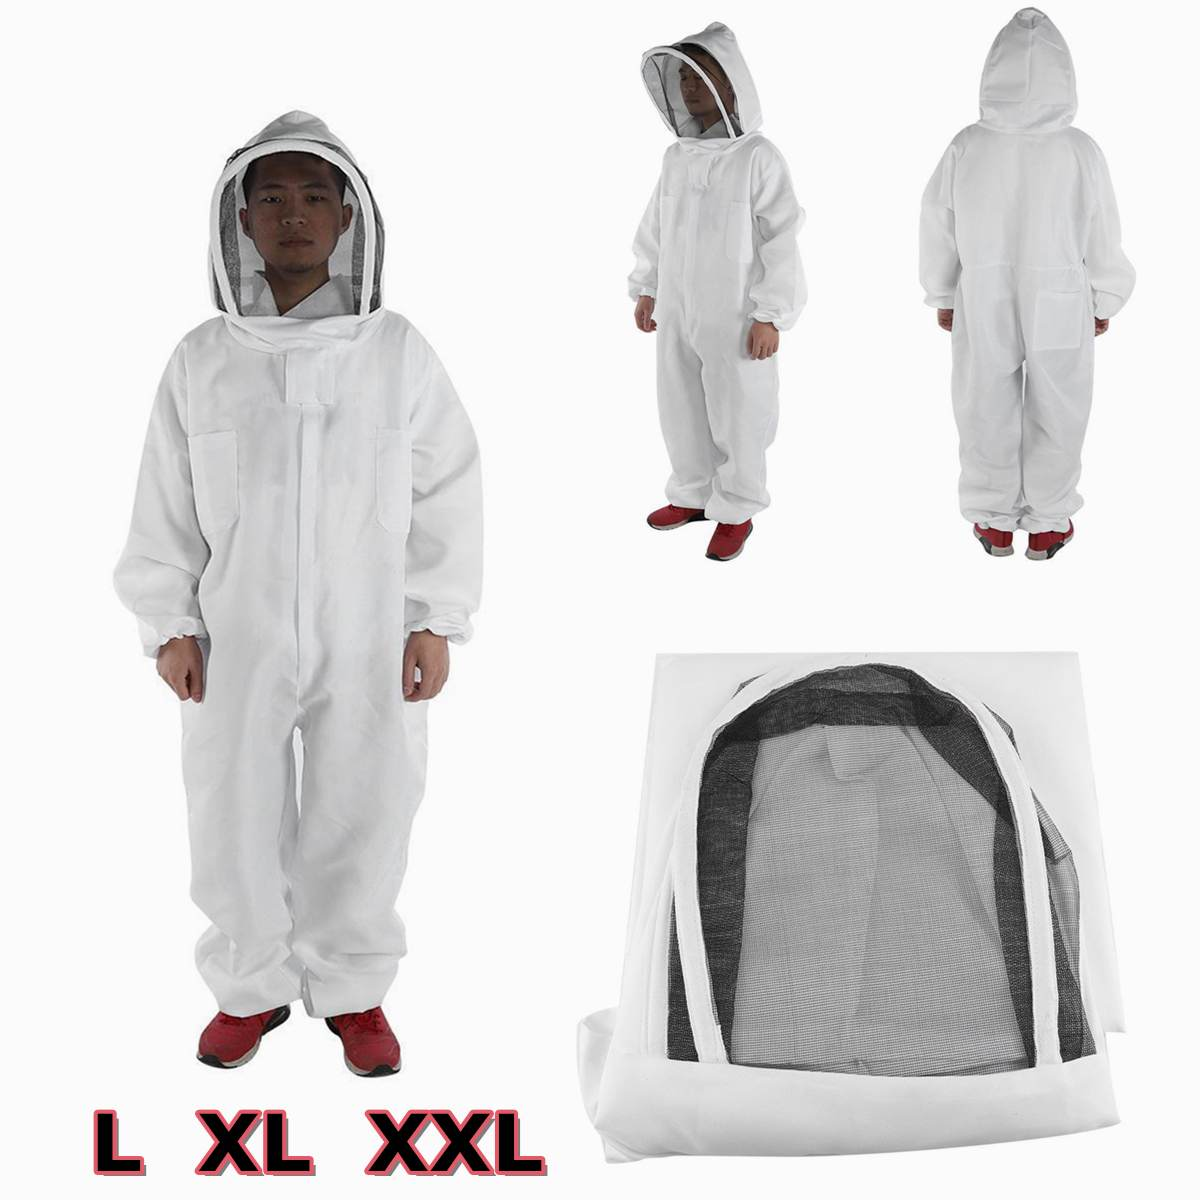 Protective-Clothing Beekeeping-Suit Anti-Bee-Coat Body-Equipment Special New White PVC